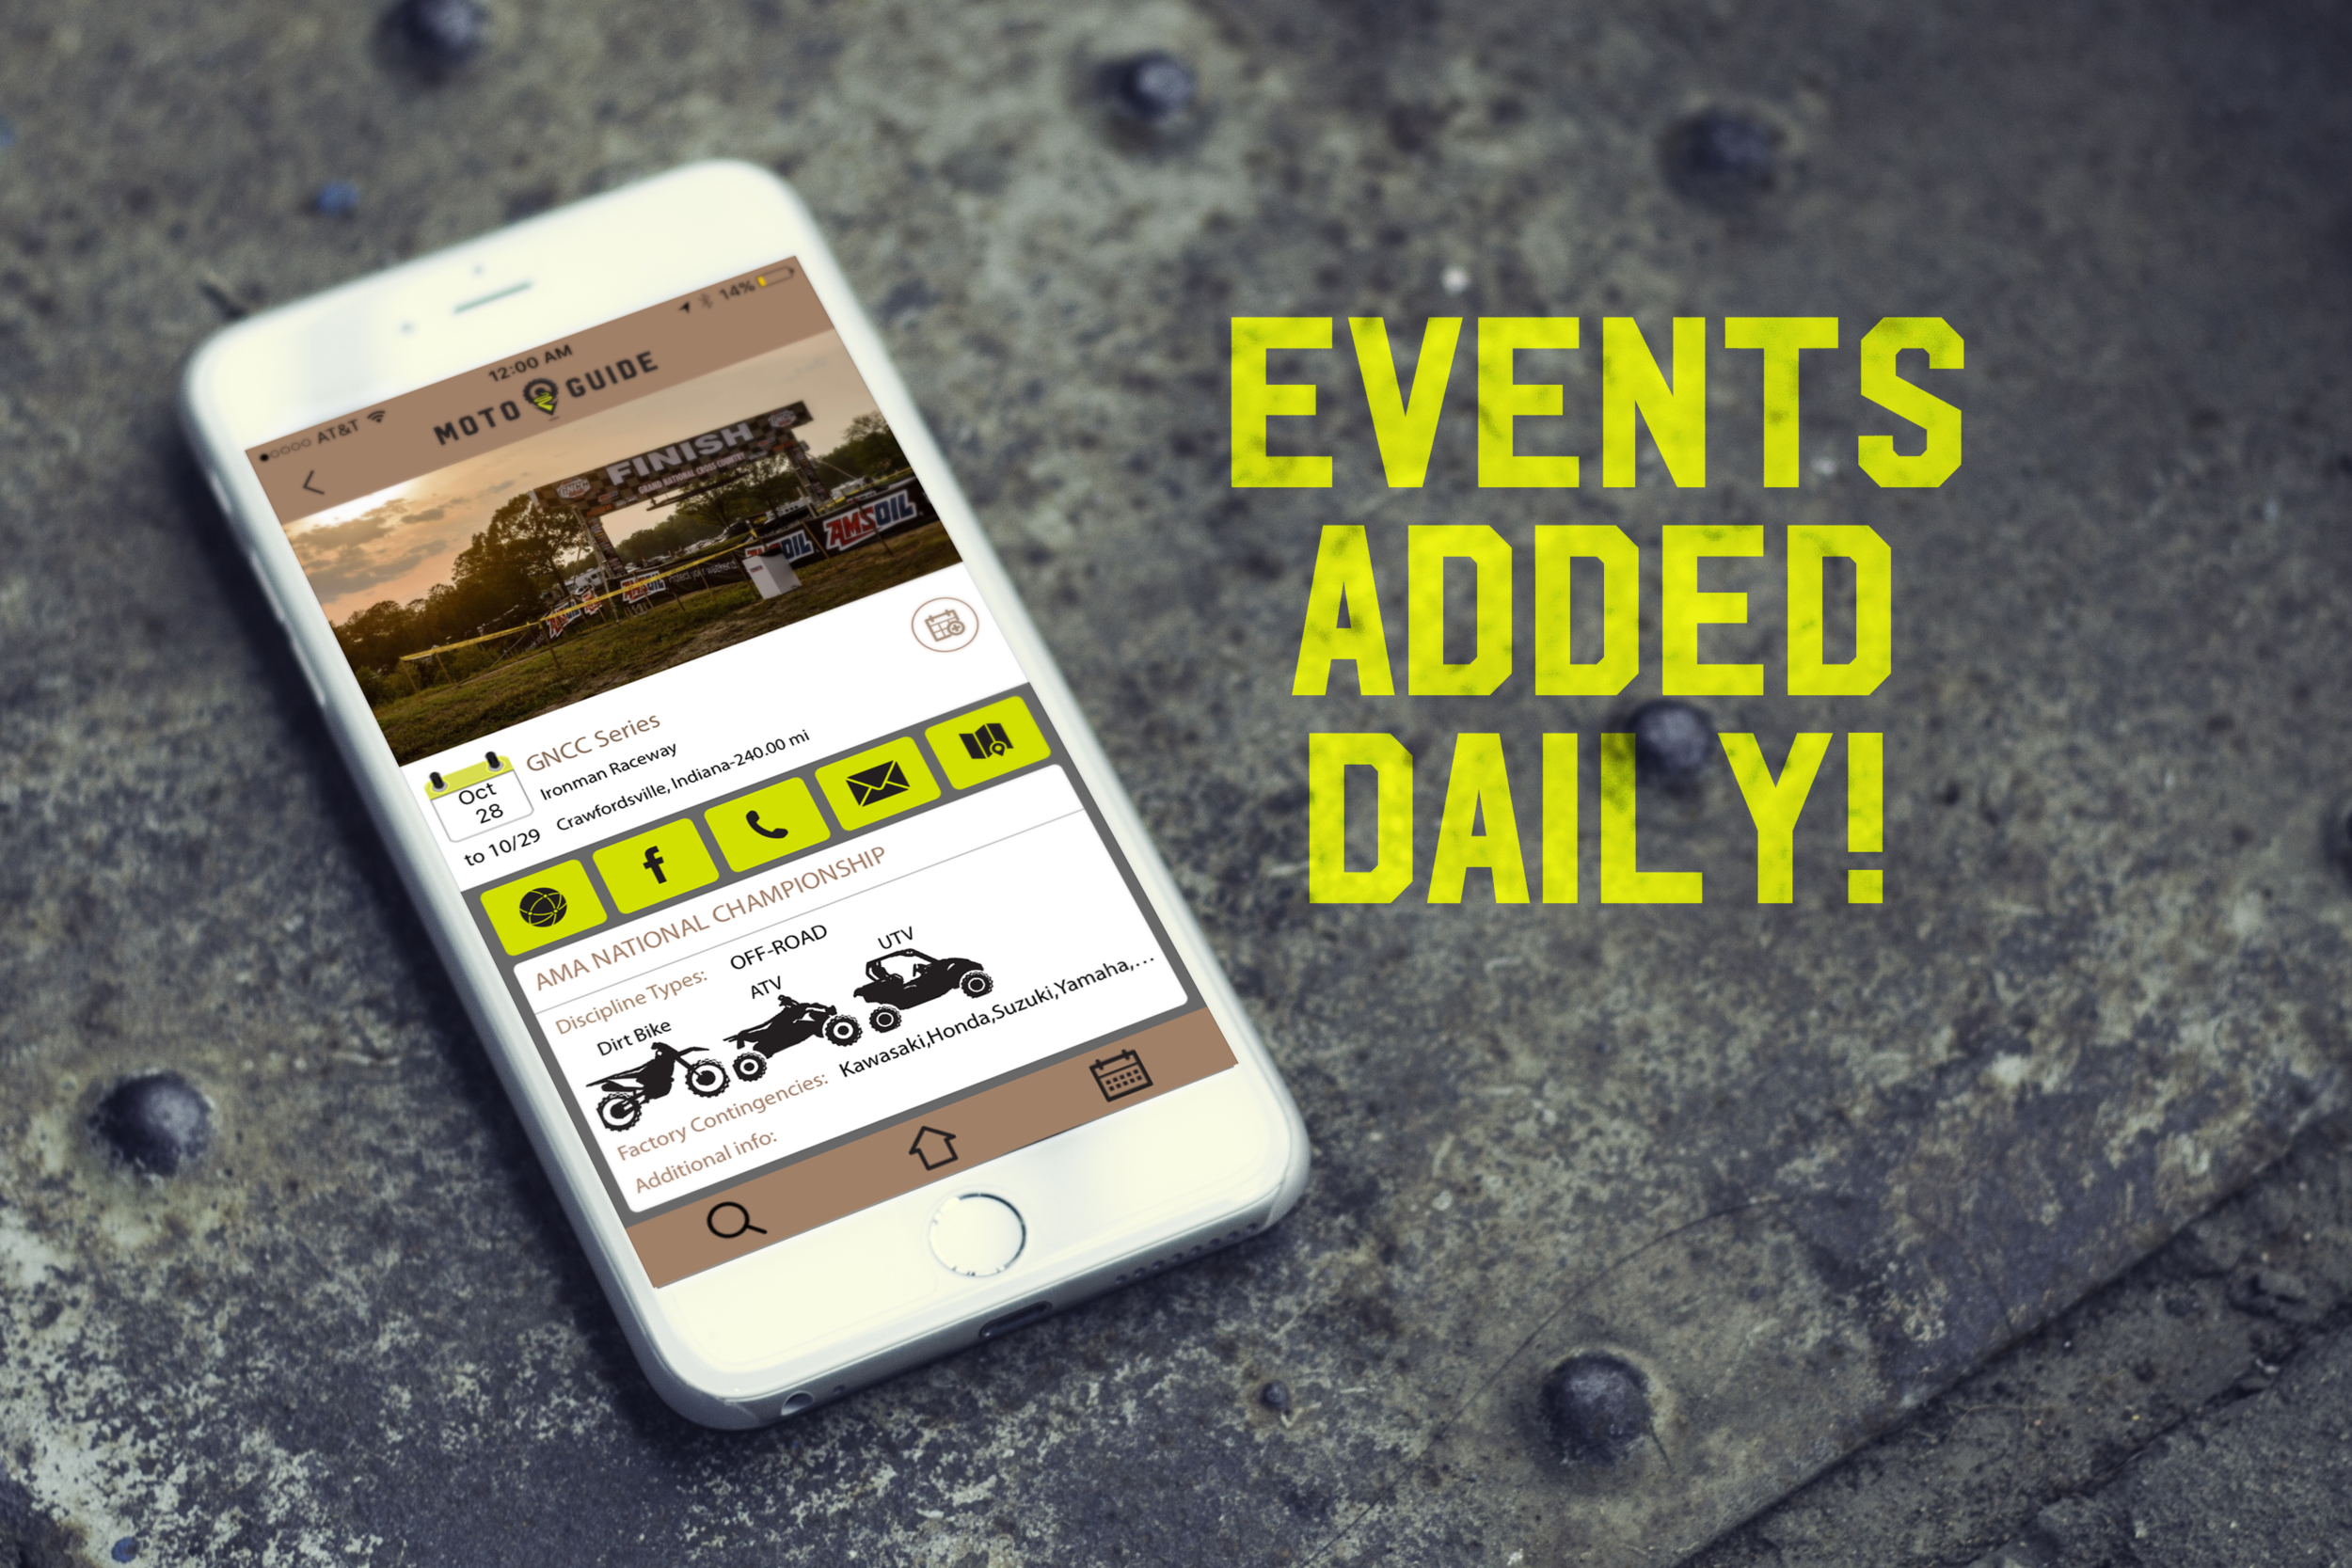 Database of Events - With new events being added daily, search through a database of racing events and organized practice days. Our MotoGuide administrators review and update our database of events on a daily basis looking for new events and cancelled events.